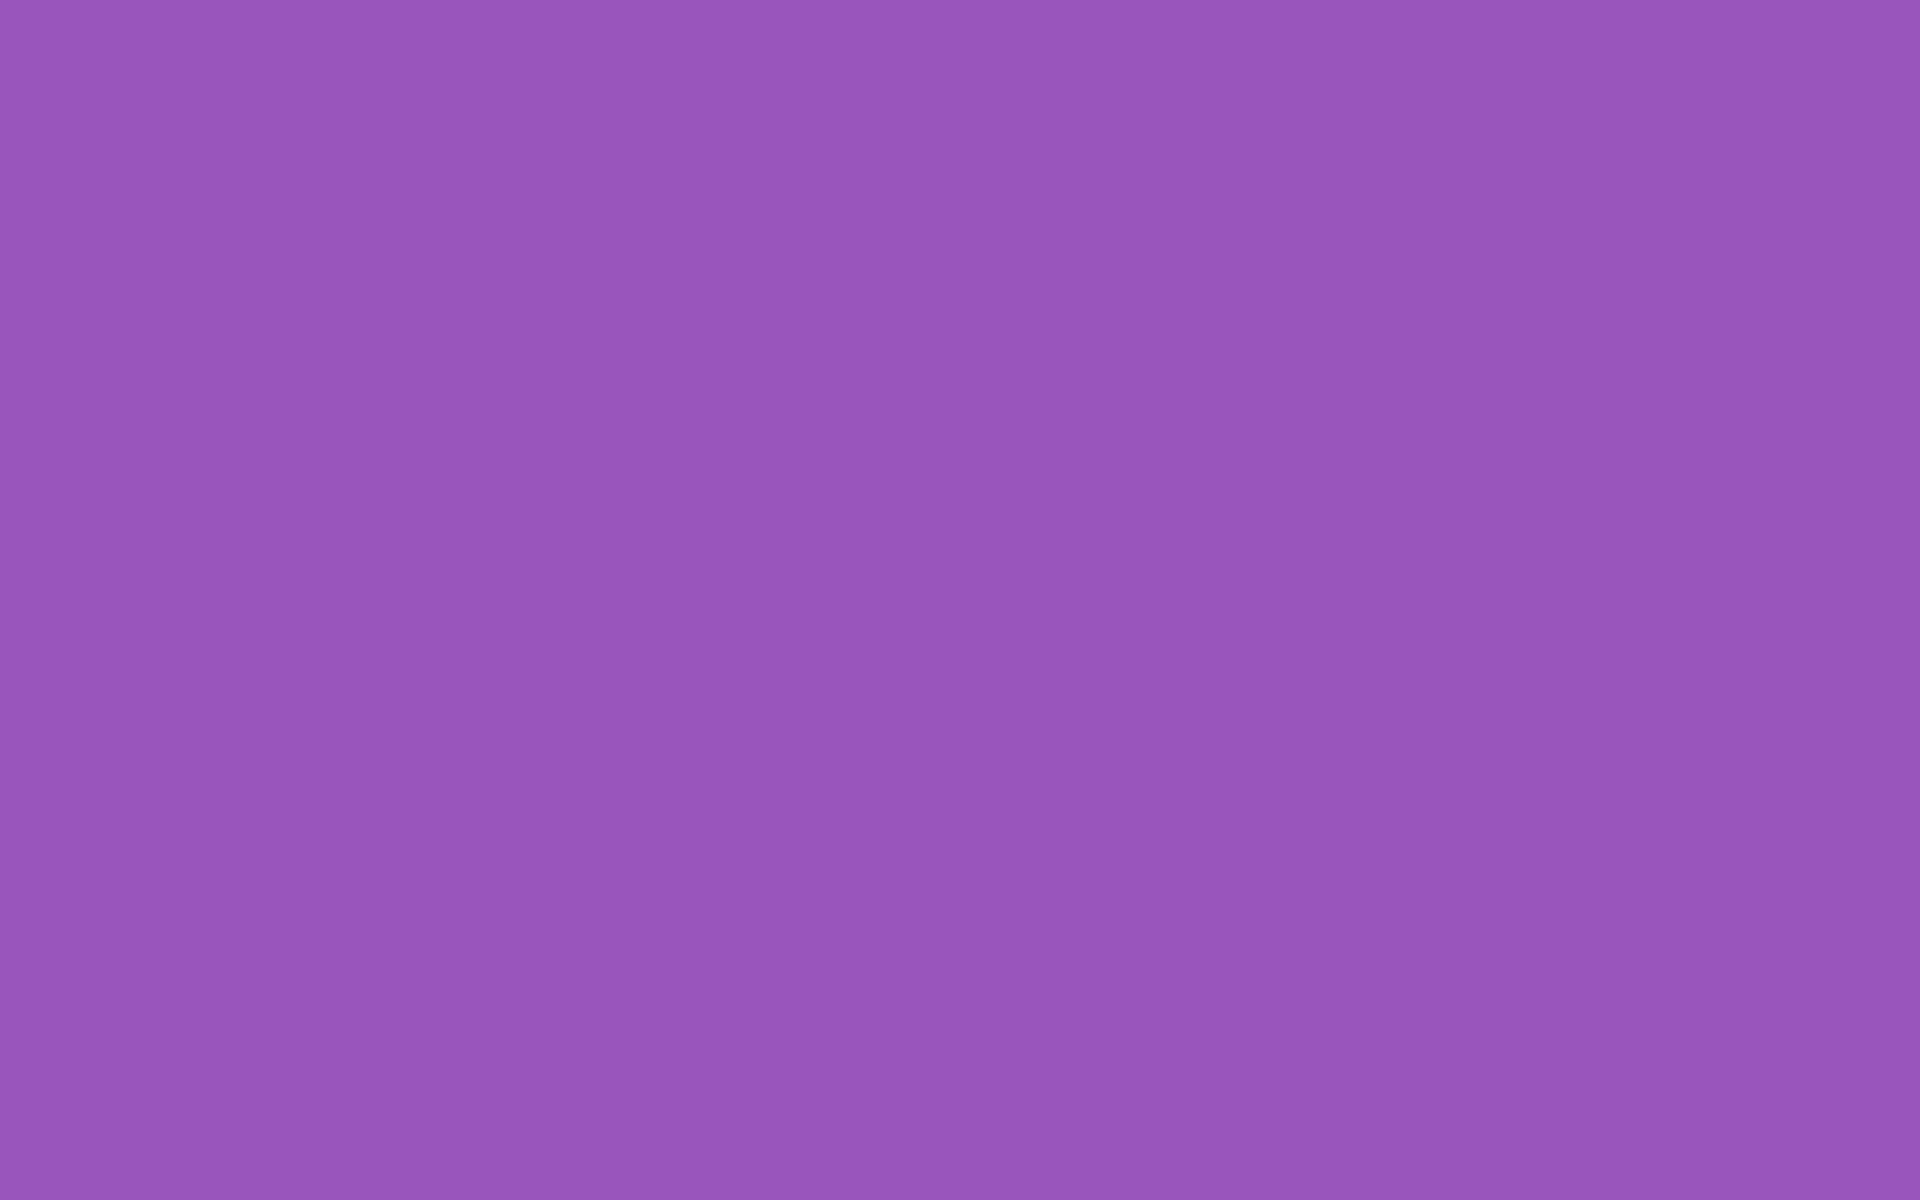 1920x1200 Deep Lilac Solid Color Background